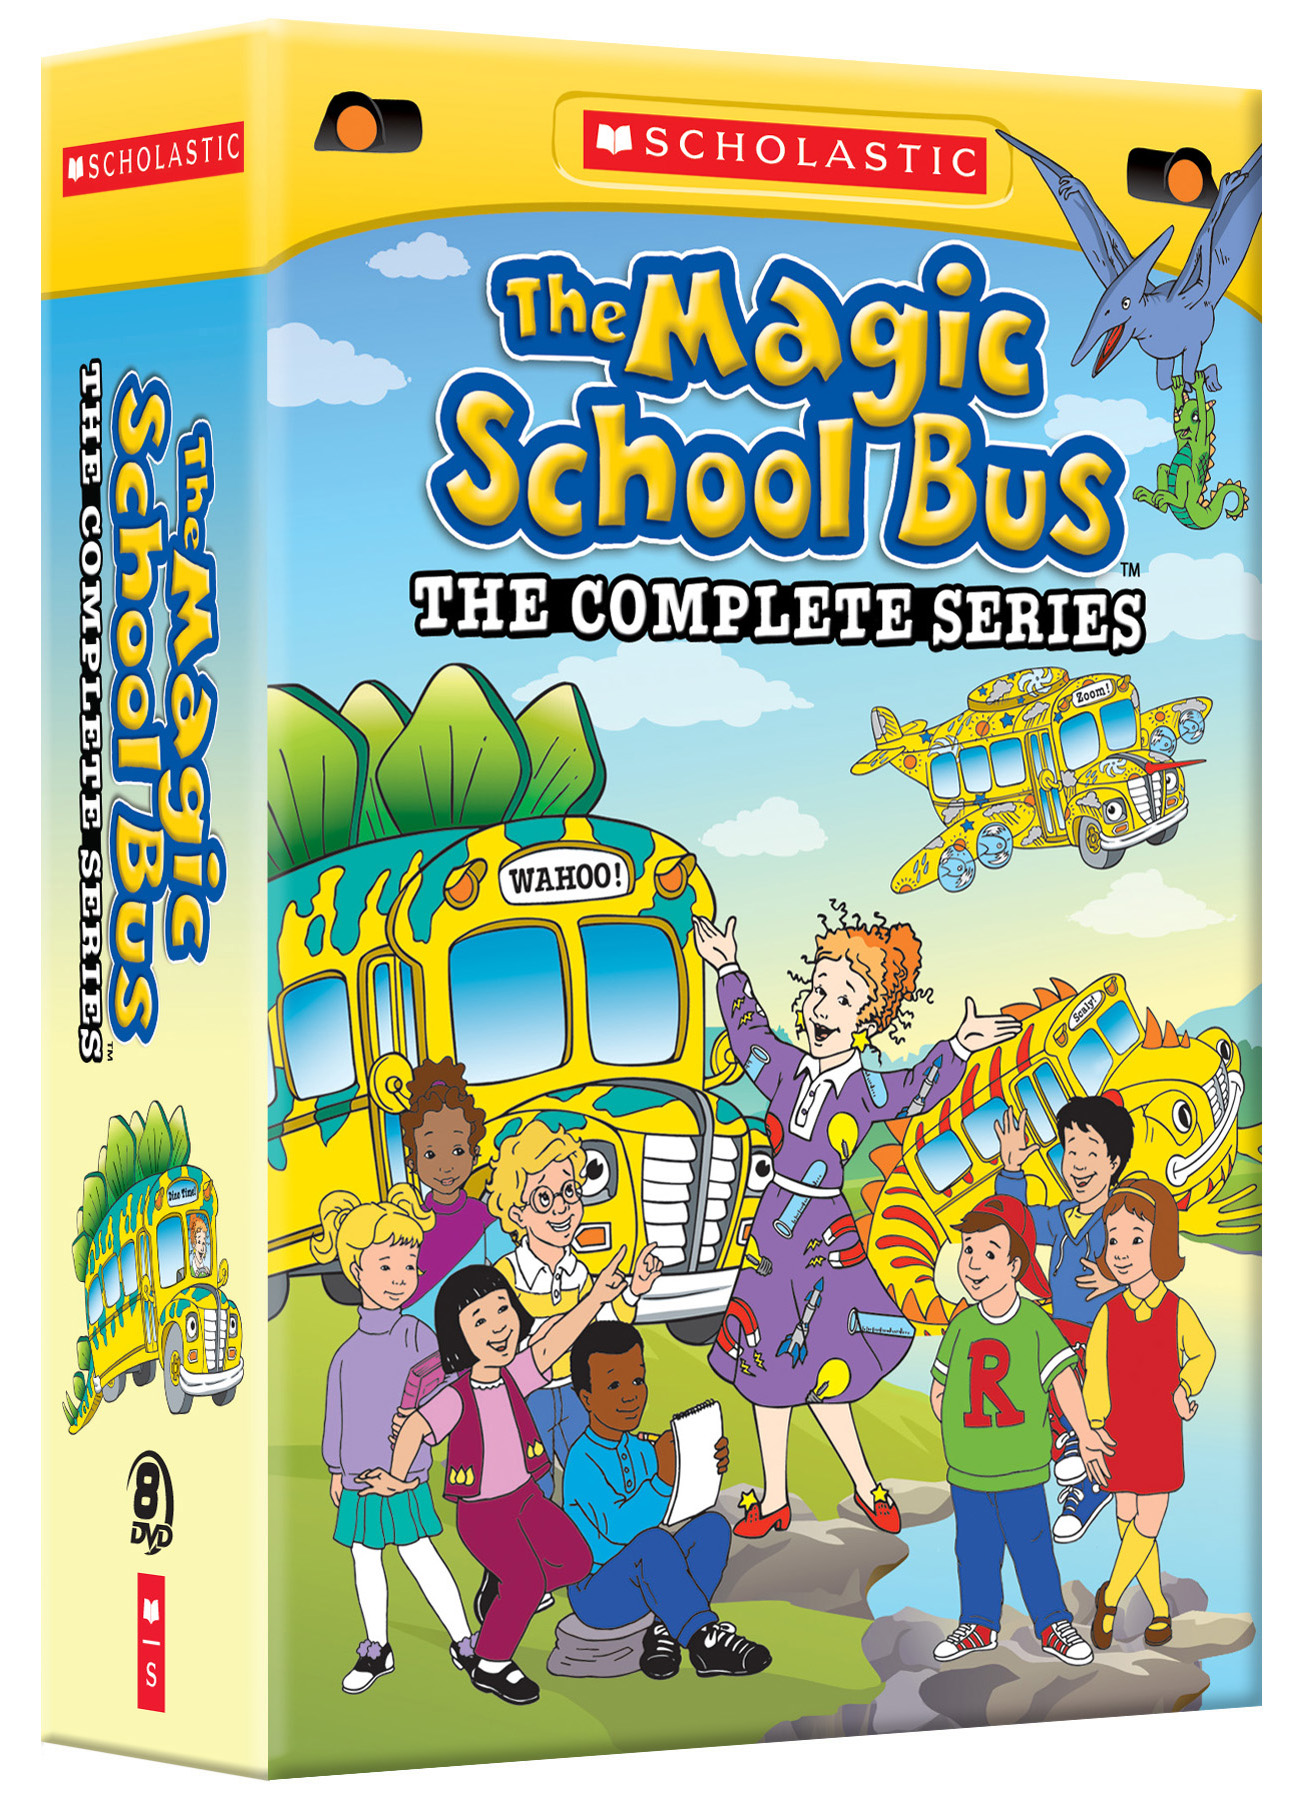 The Magic School Bus The Complete Series  Scholastic